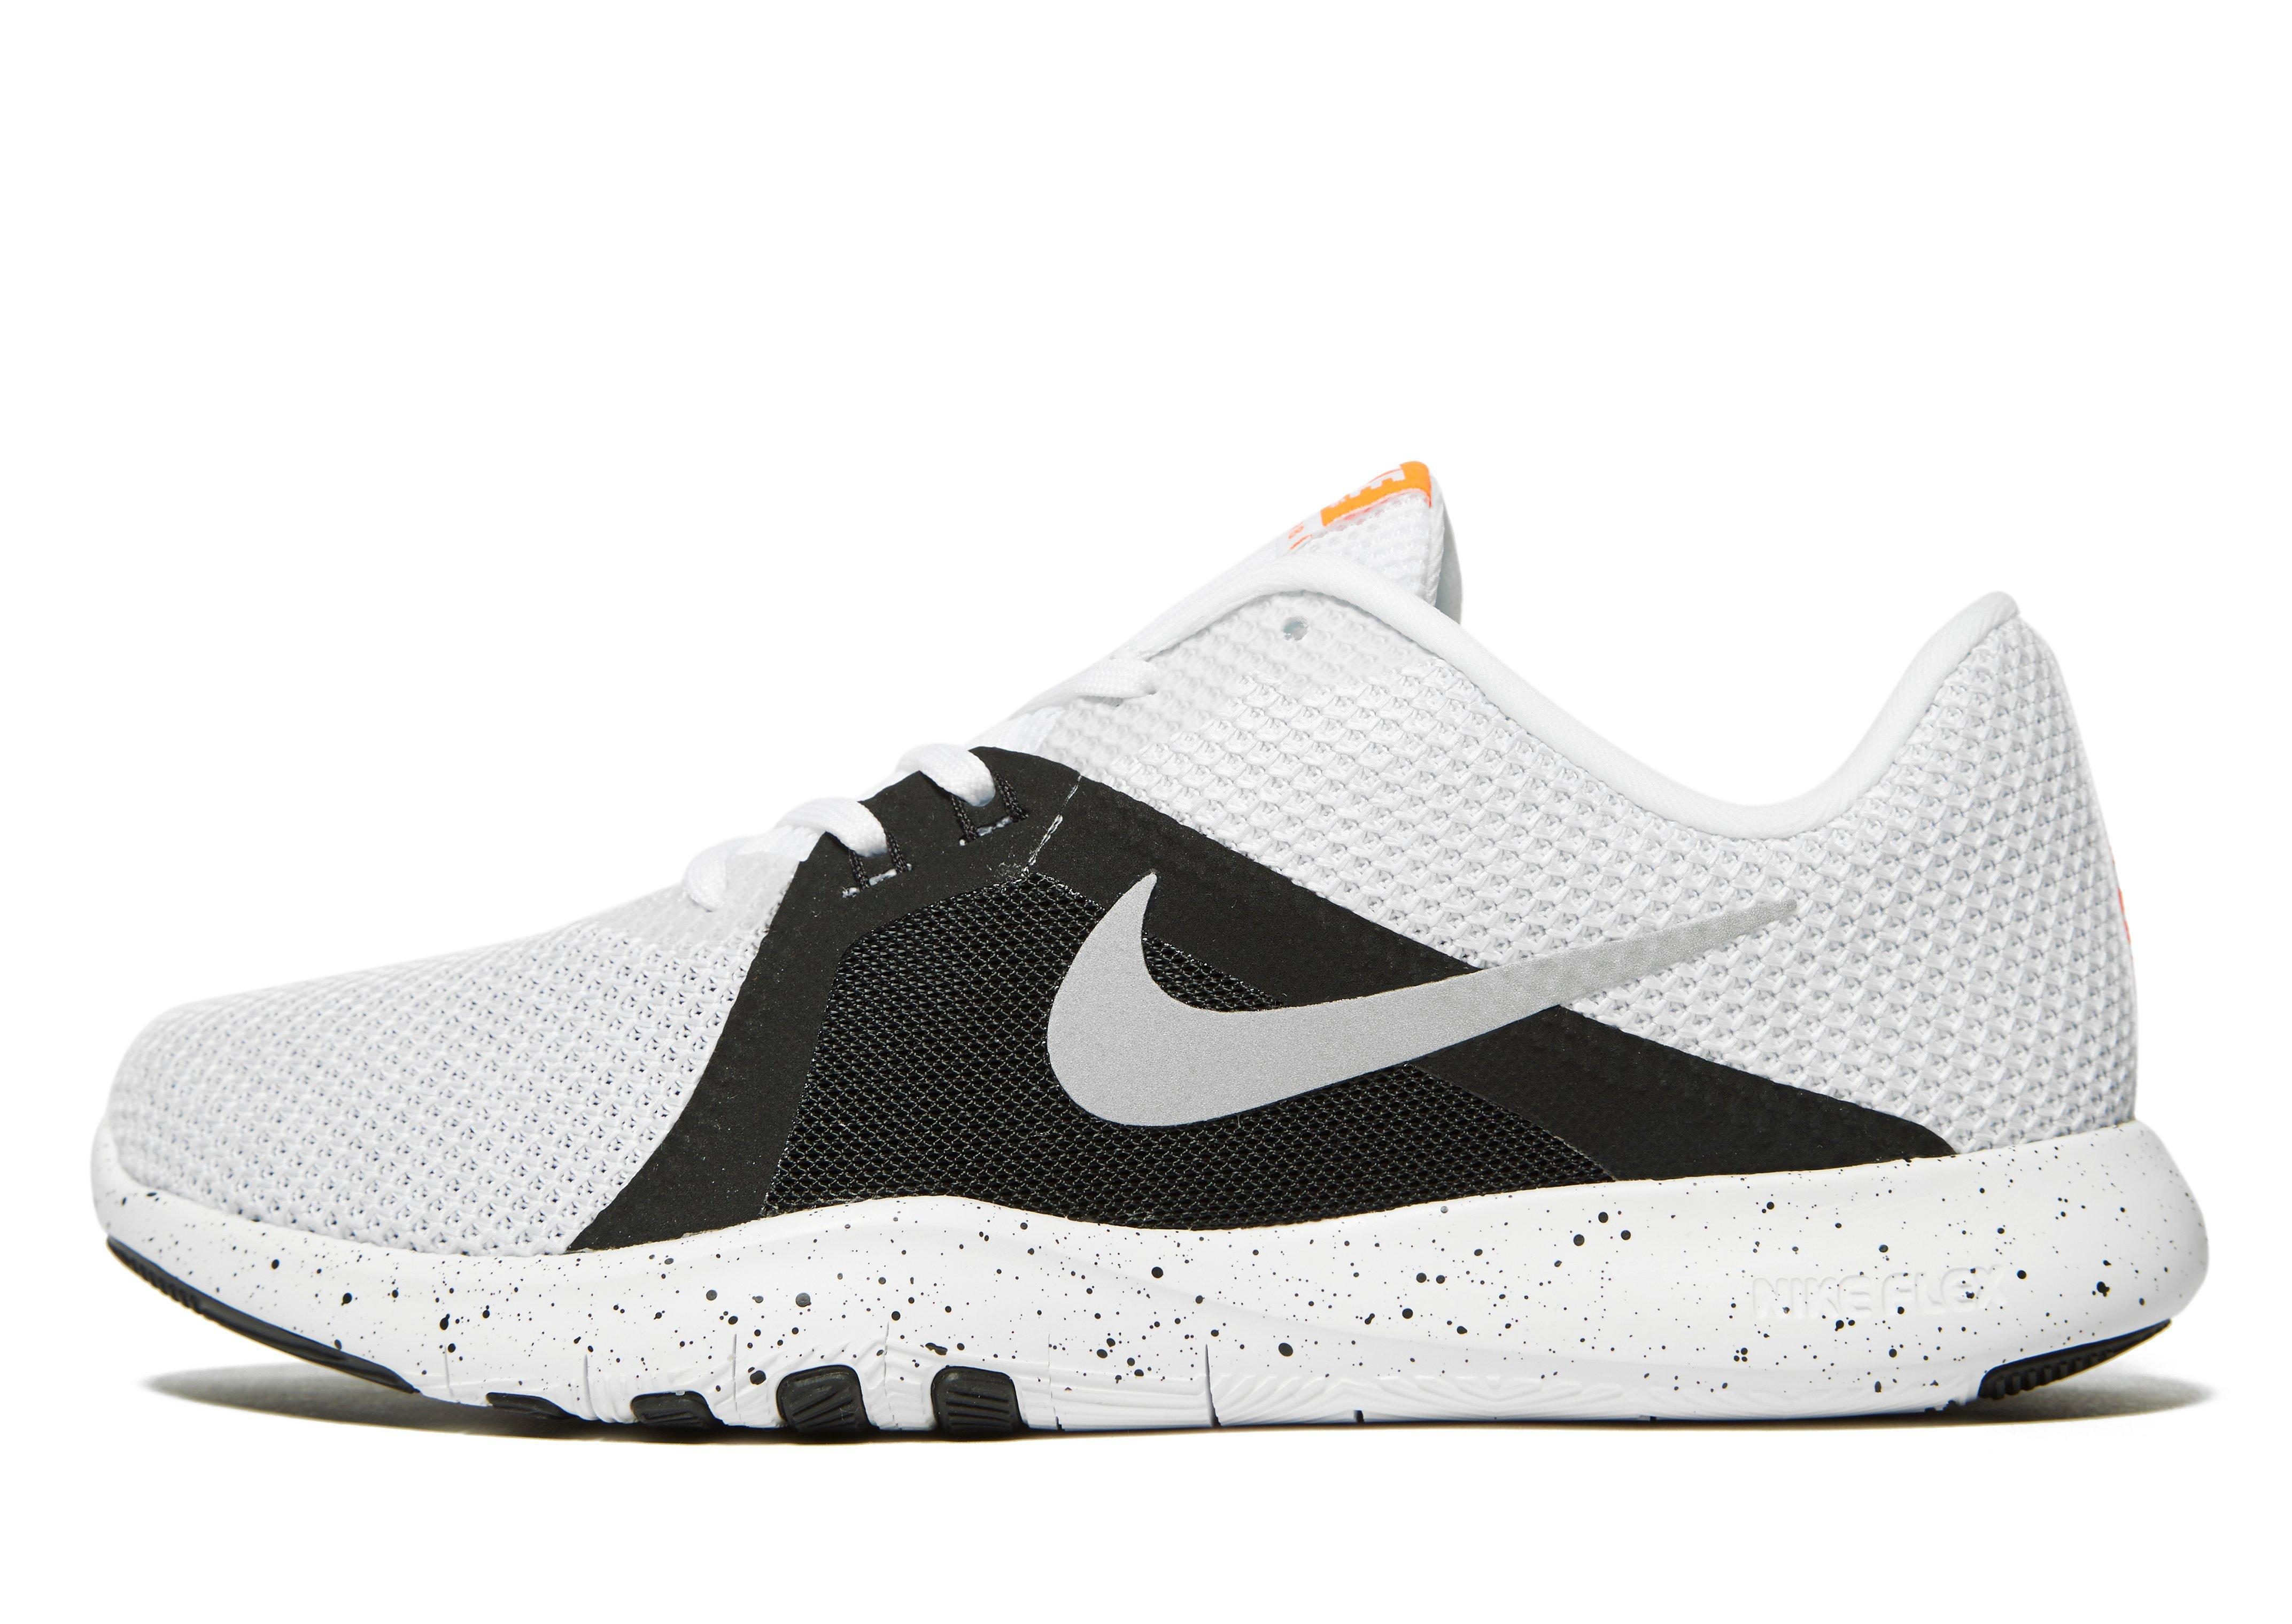 best website 6b5a8 11007 32e21 dcfee  promo code for lyst nike flex tr8 in white for men 93a1d a7215